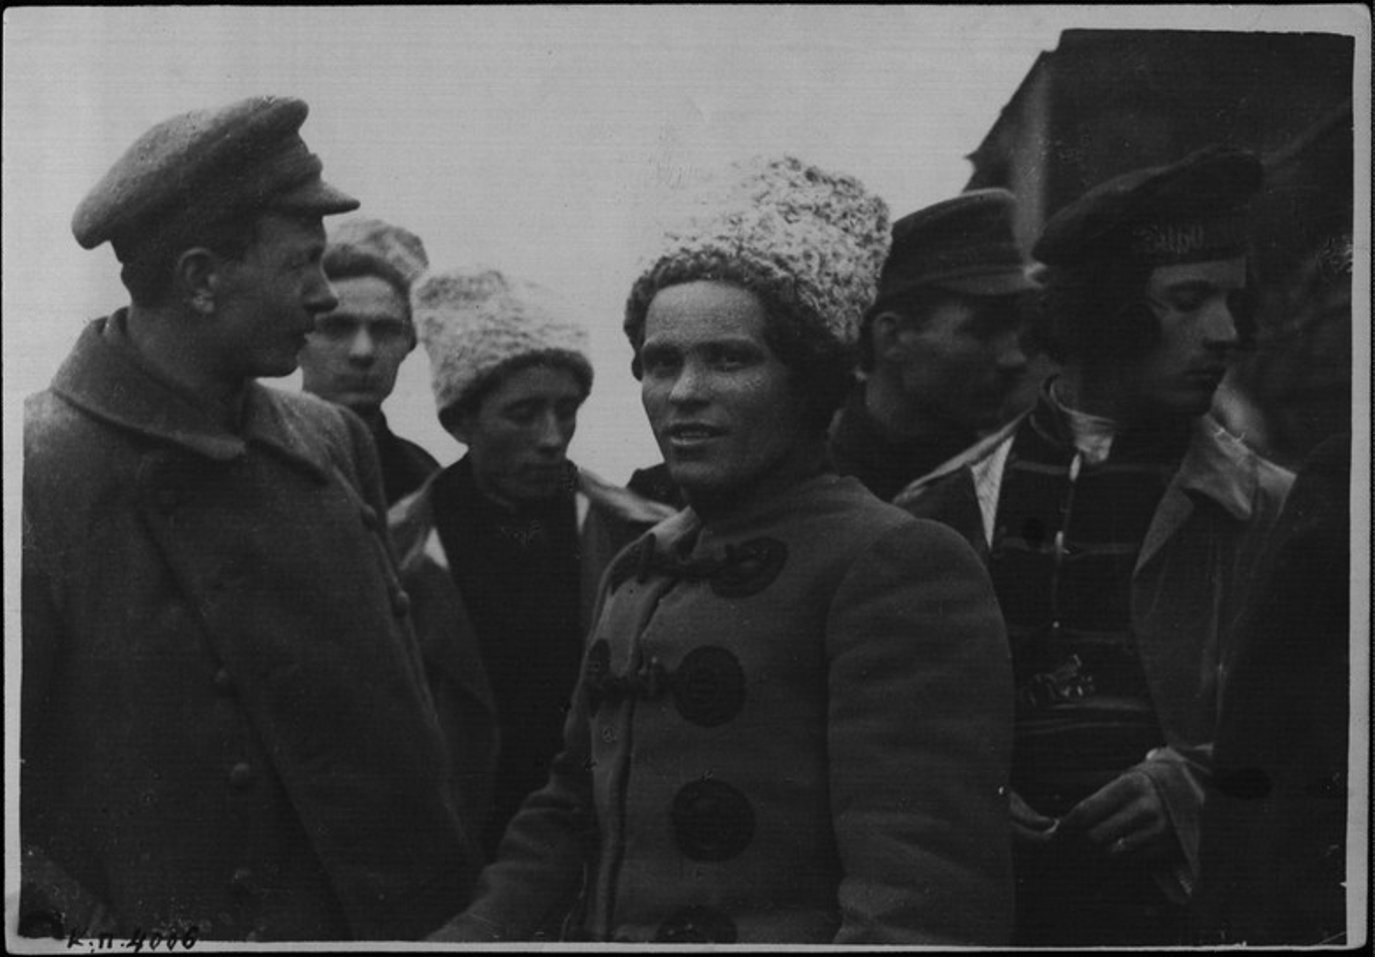 Makhno group